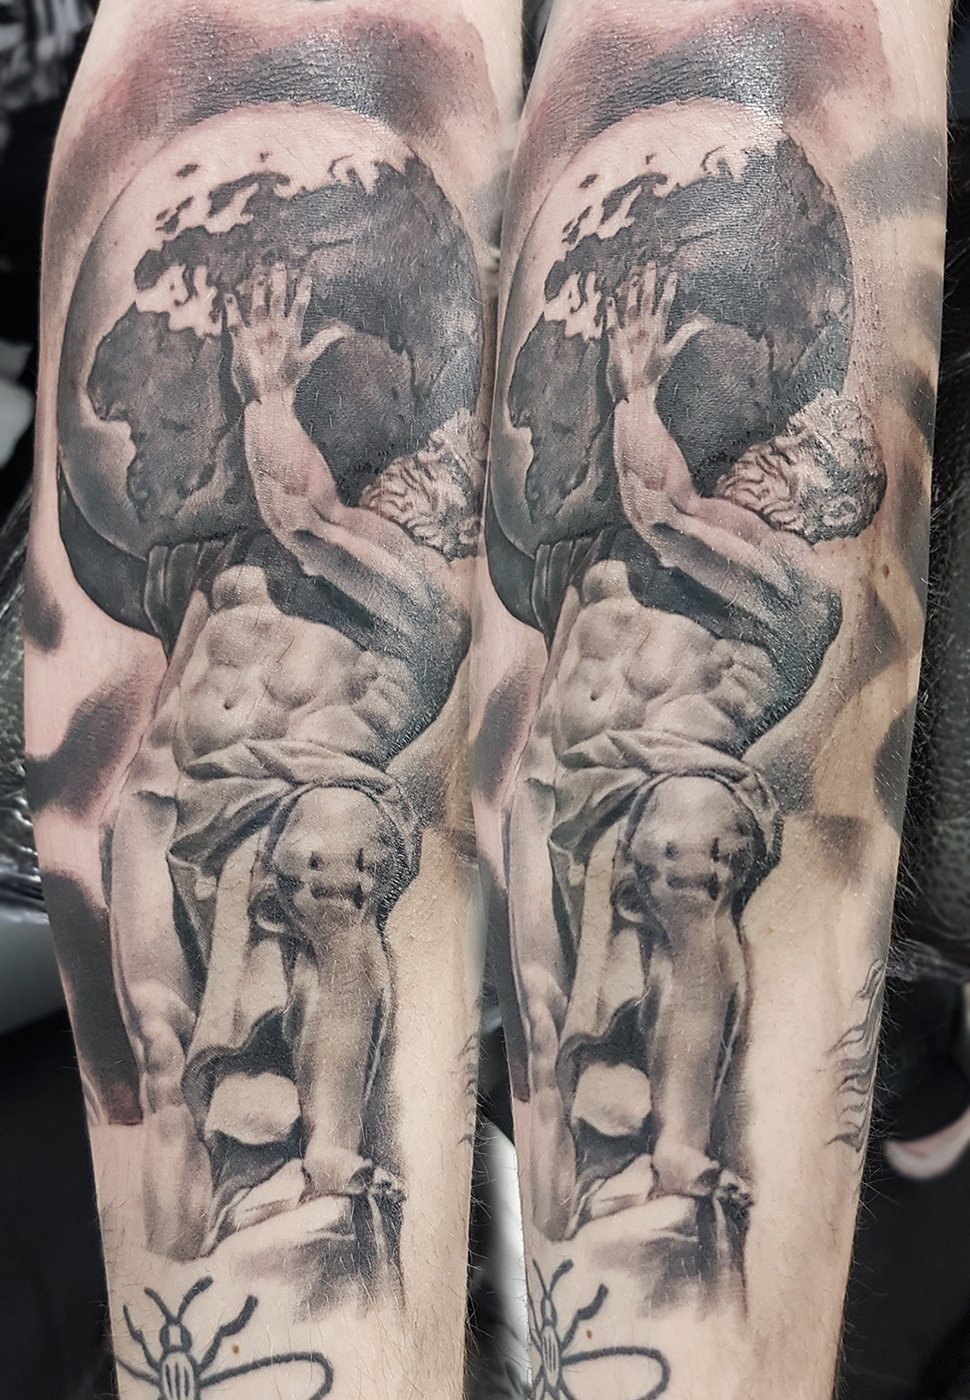 Atlas greek god statue sculpture realism tattoo manchester ancoats